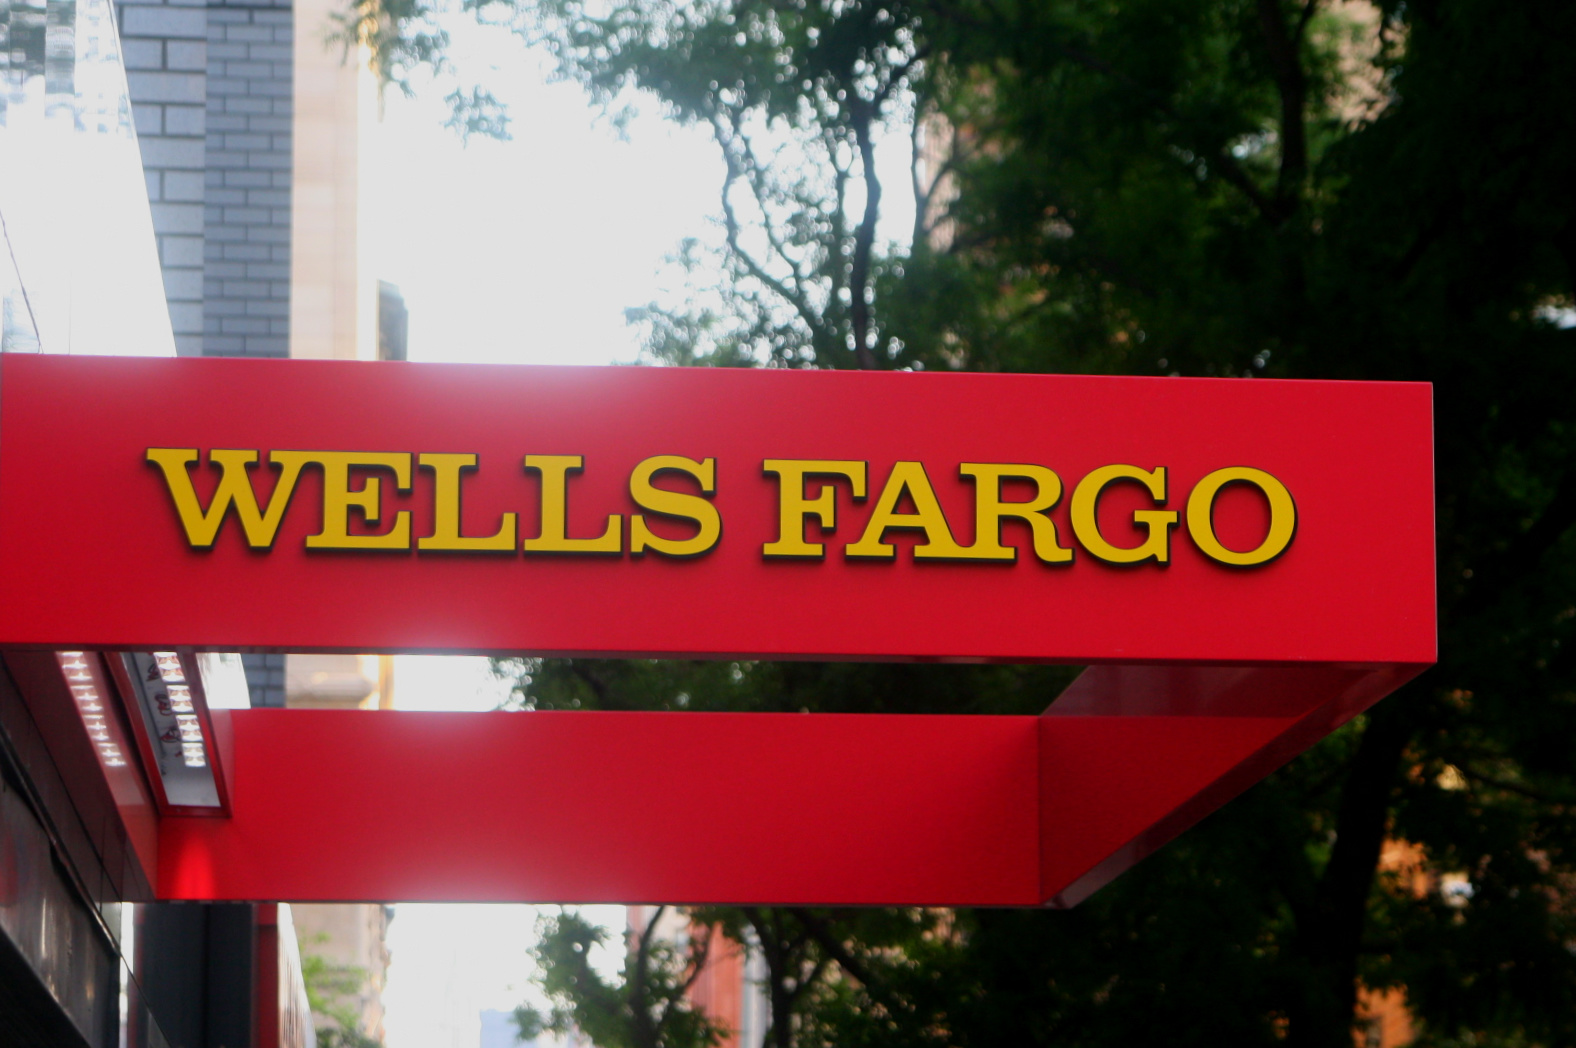 Wells Fargo Checking Account Fees: How to Avoid Them